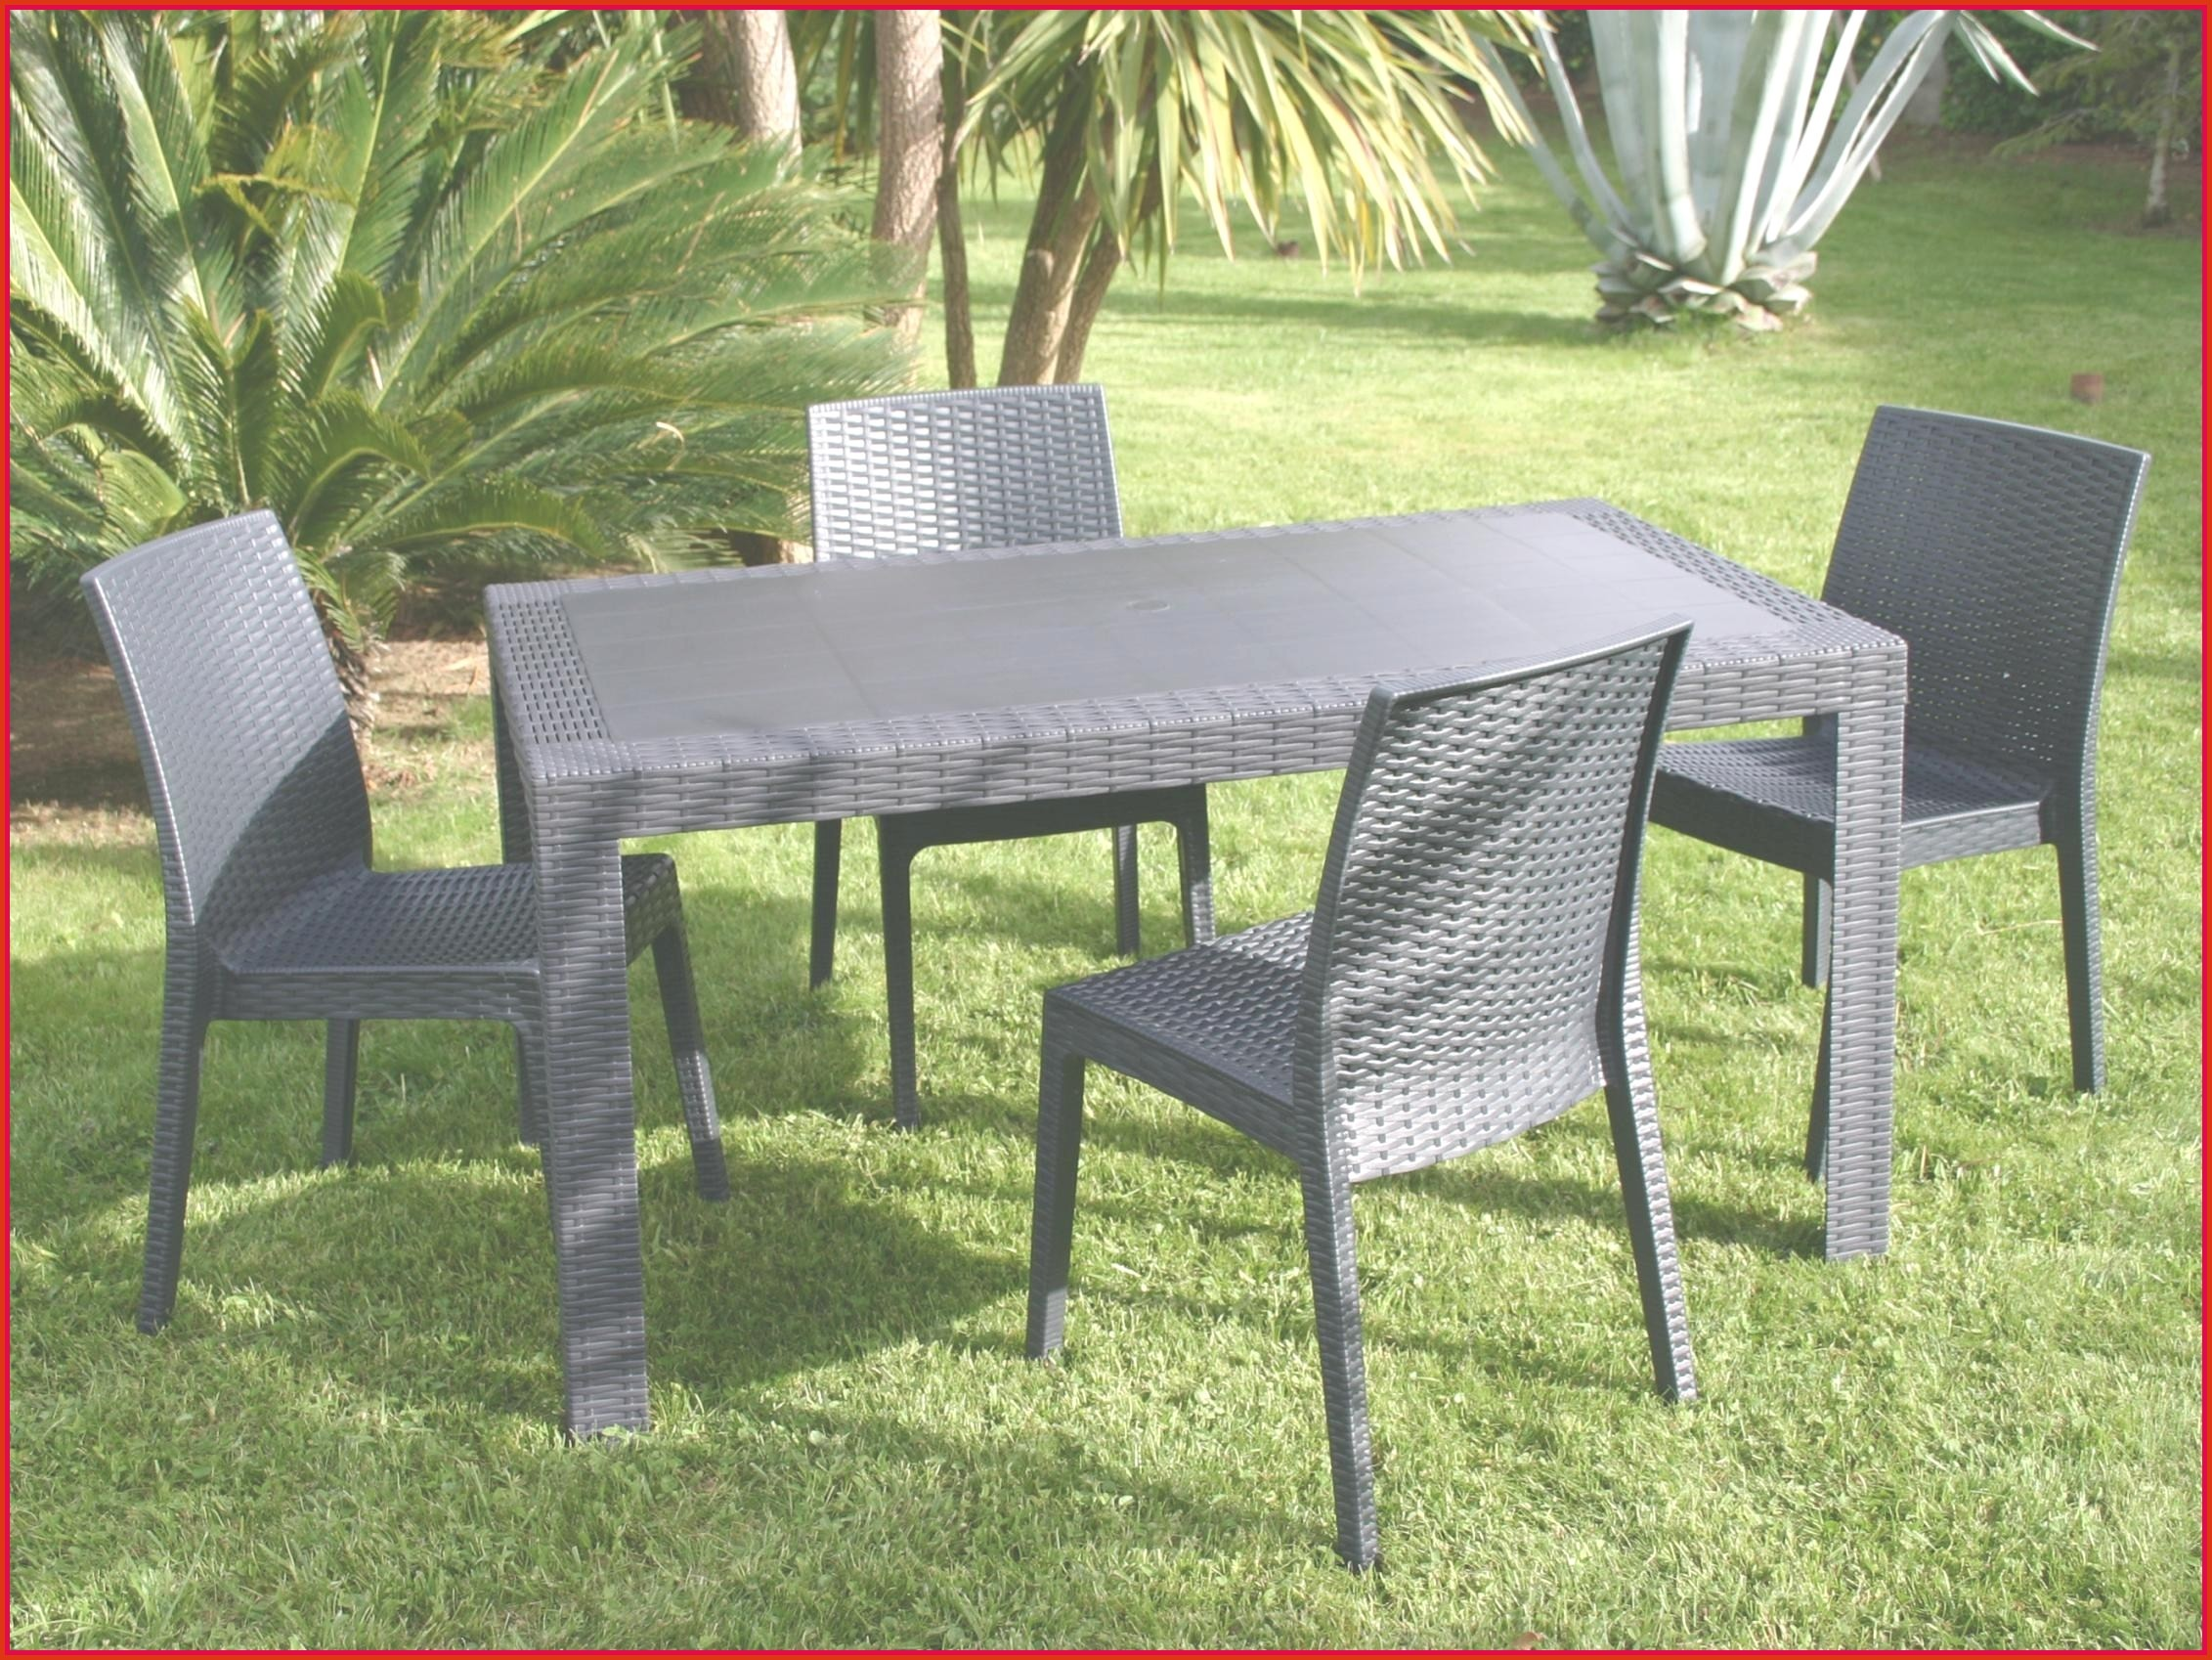 salon de jardin chez bri arche top design salon de jardin chez bri arch luxury table de jardin bri arch